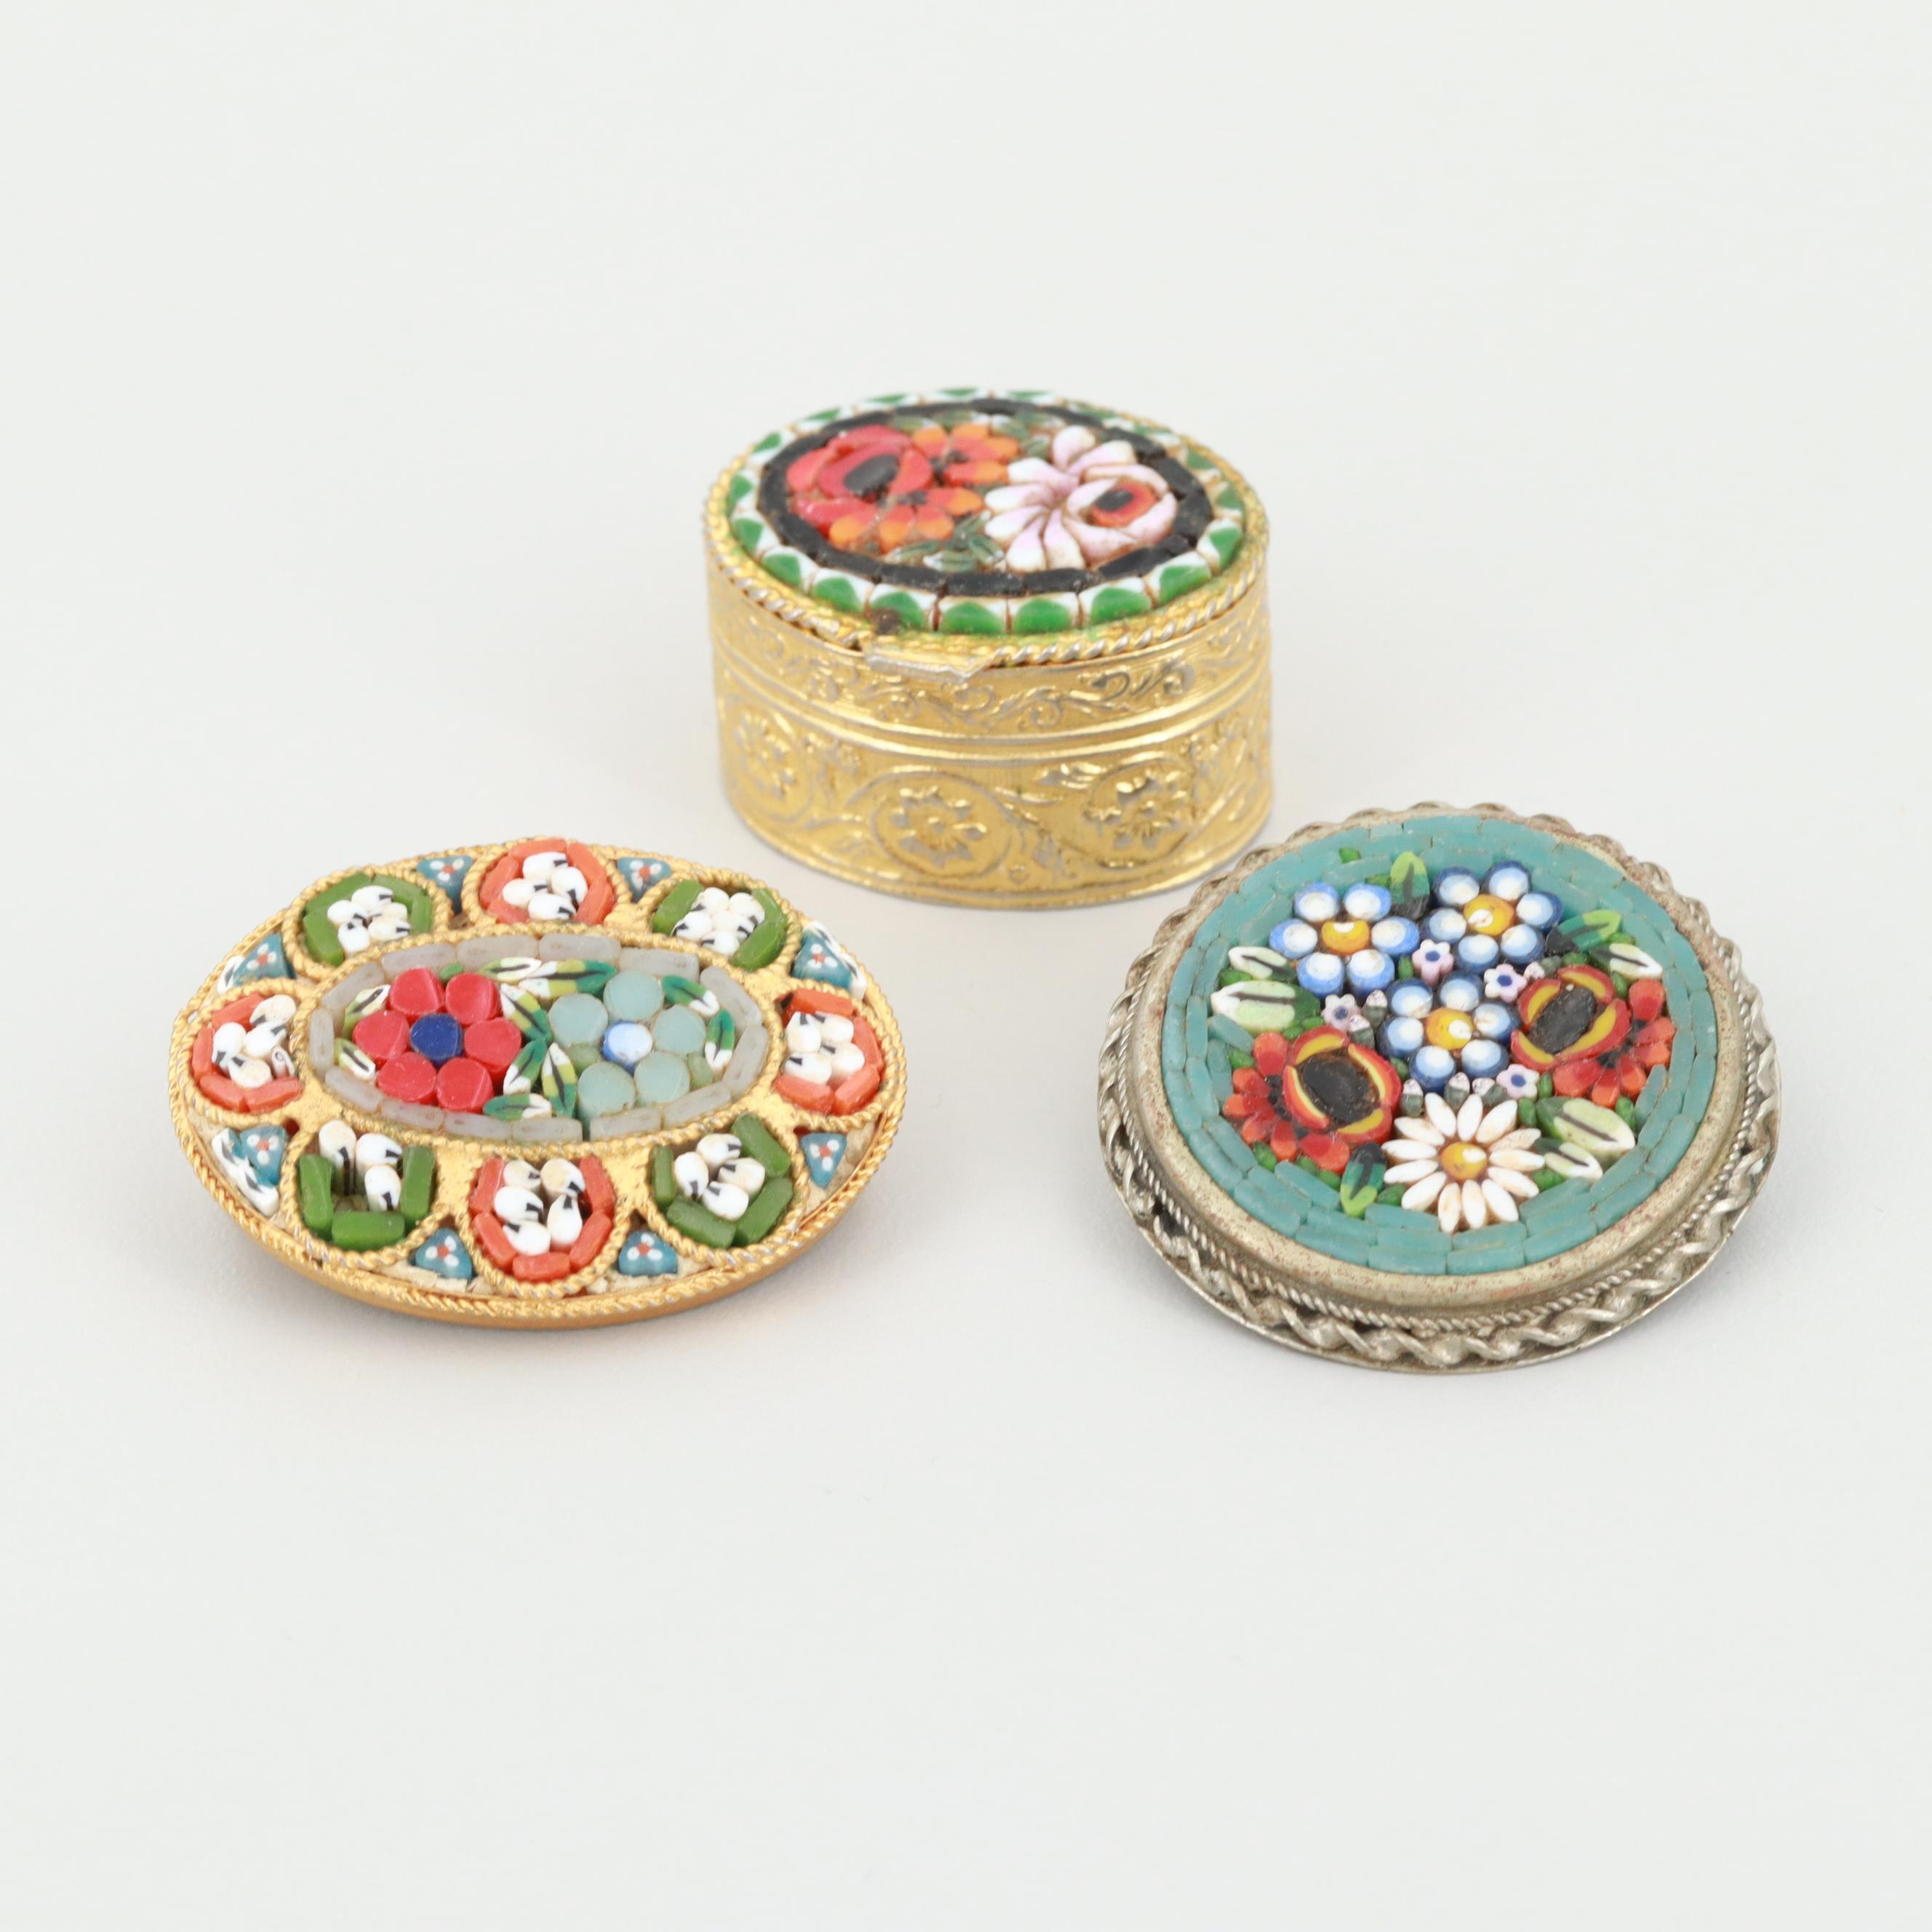 Gold and Silver Tone Glass and Enamel Micro Mosaic Floral Brooches and Pill Box